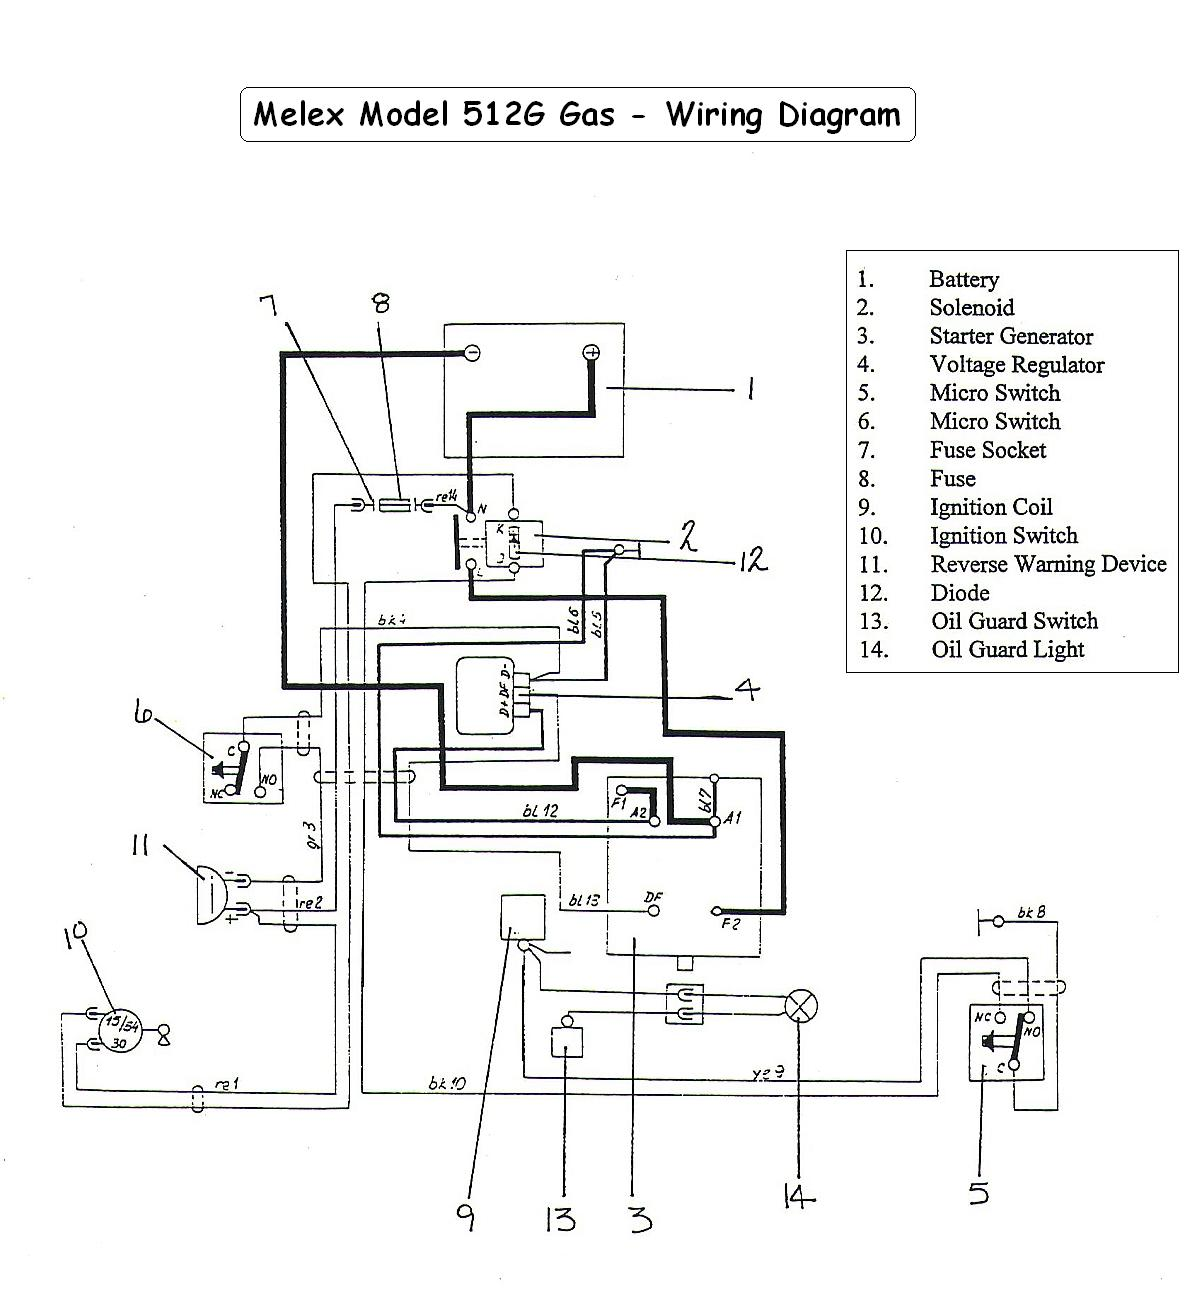 Outstanding Wiring Diagram Golf Cart Starter Generator Wiring Diagram Taylor Wiring Digital Resources Minagakbiperorg